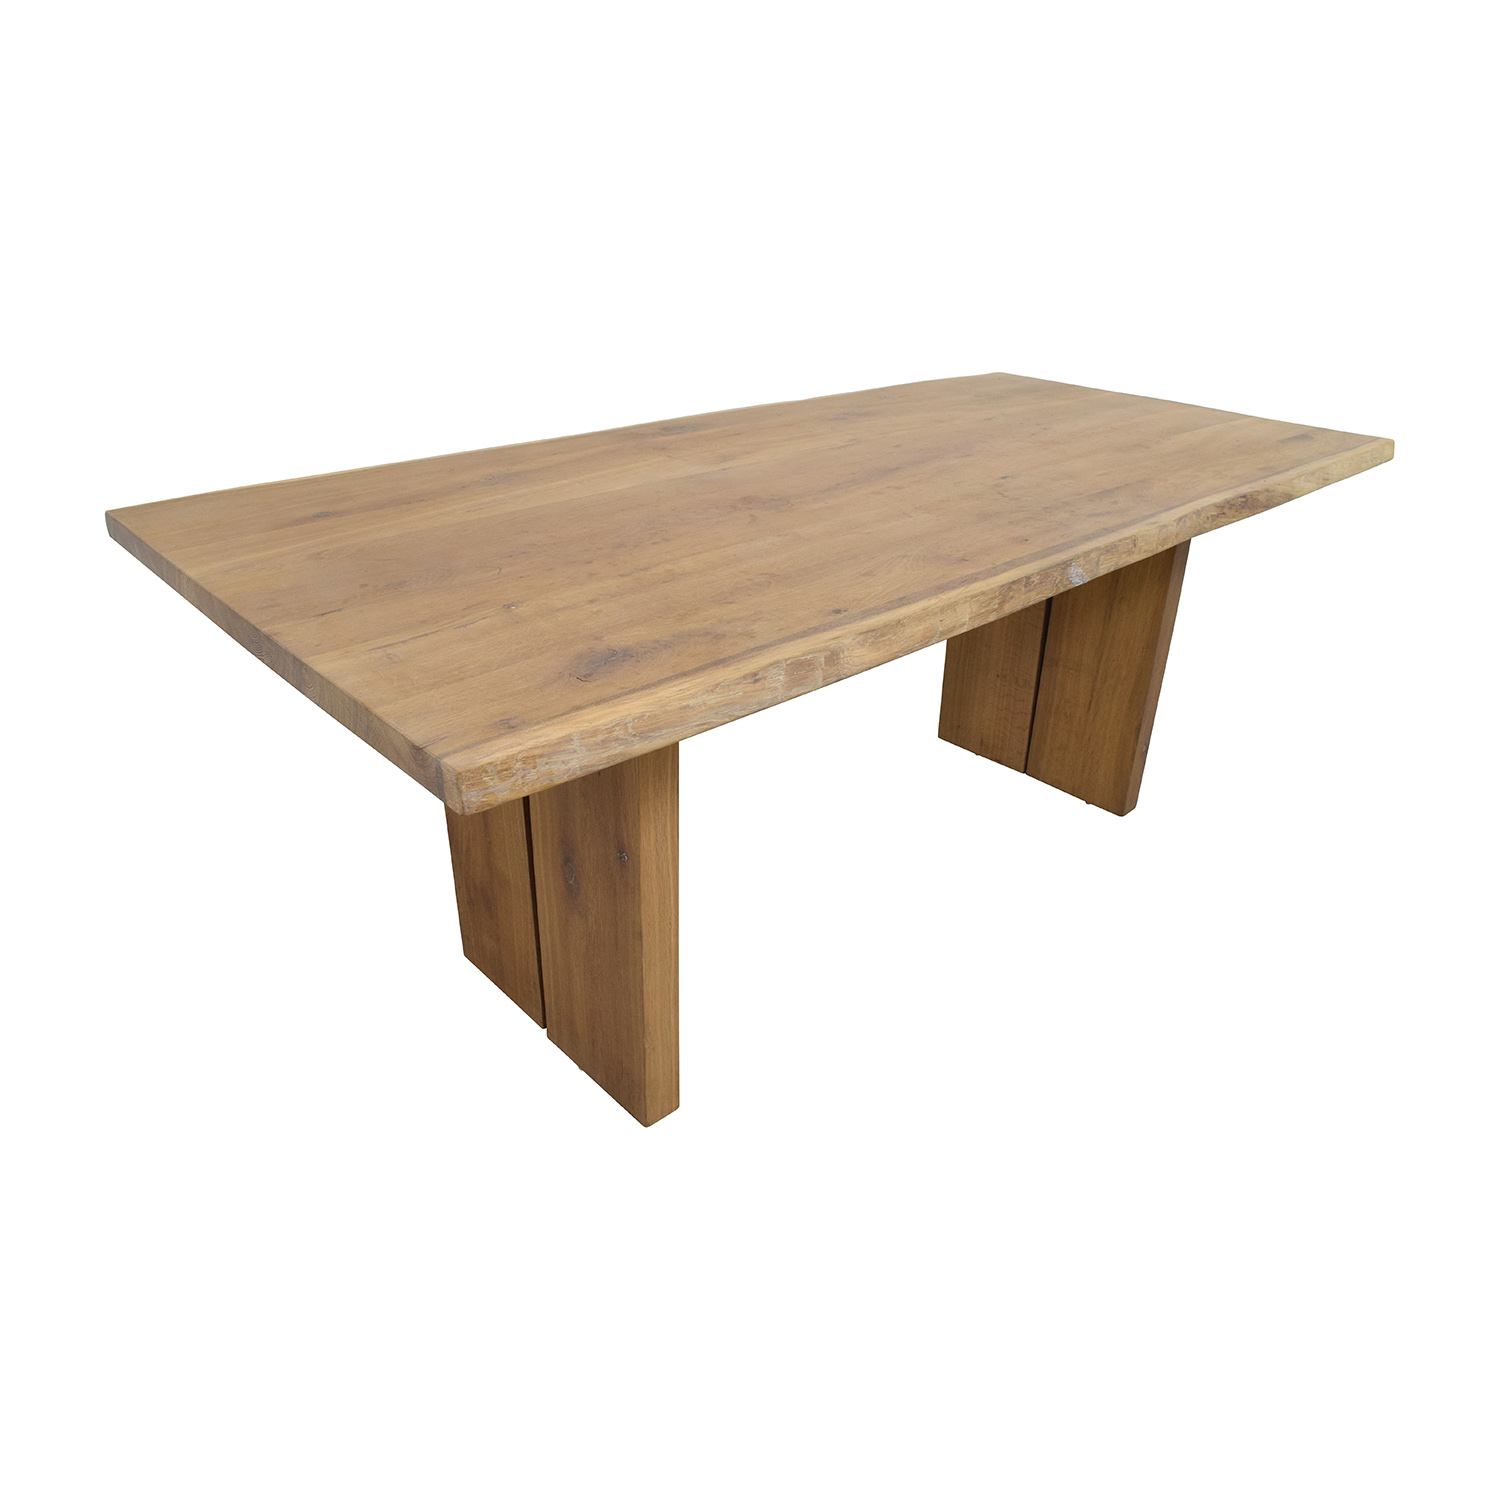 buy Modern Wood Plank Dining Table online